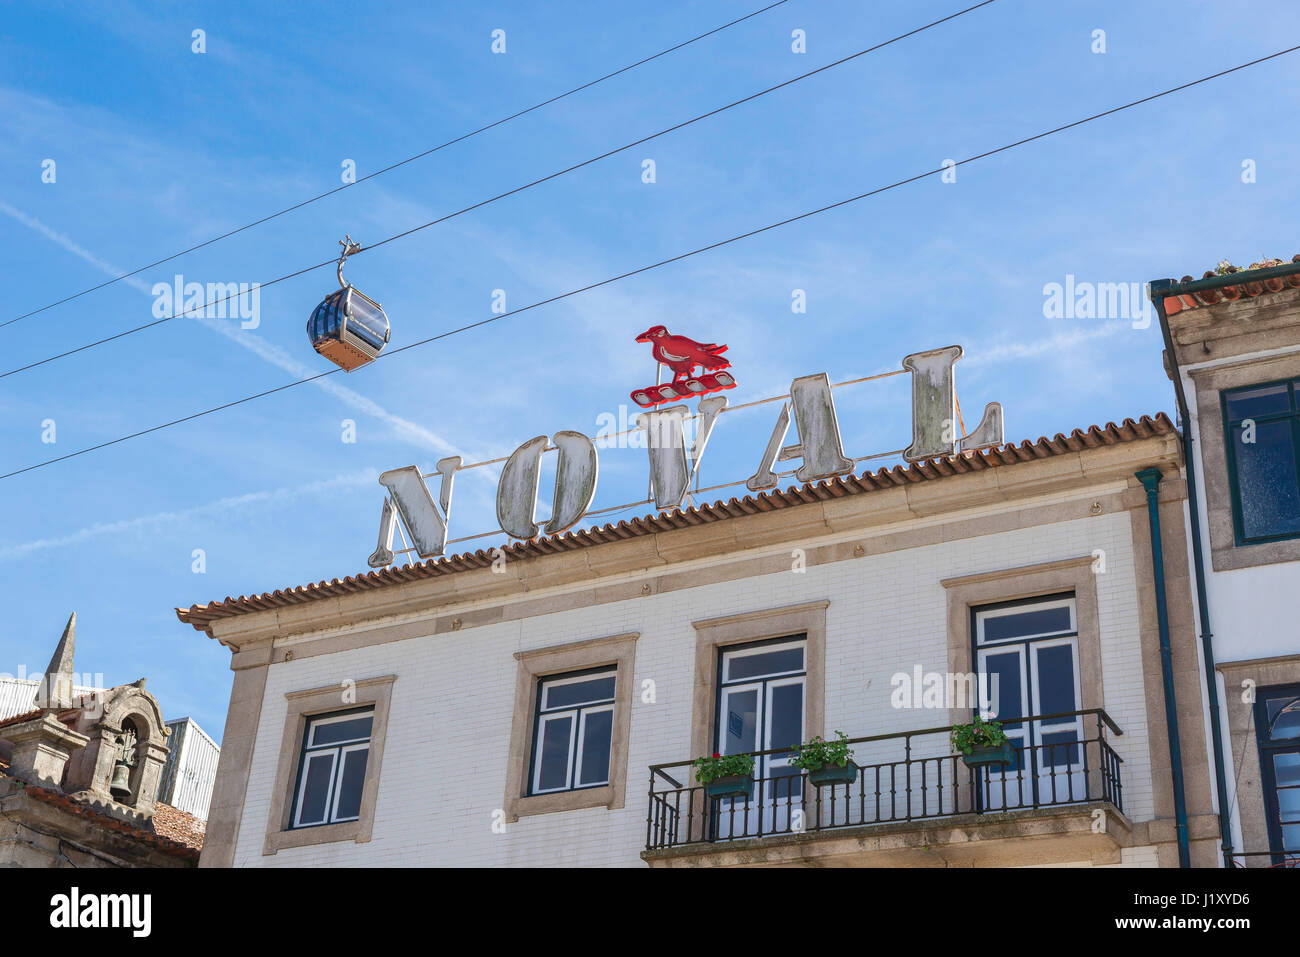 Porto Portugal Gaia, a cable car carrying tourists passes over a Noval Port sign in the waterfront Gaia district - Stock Image